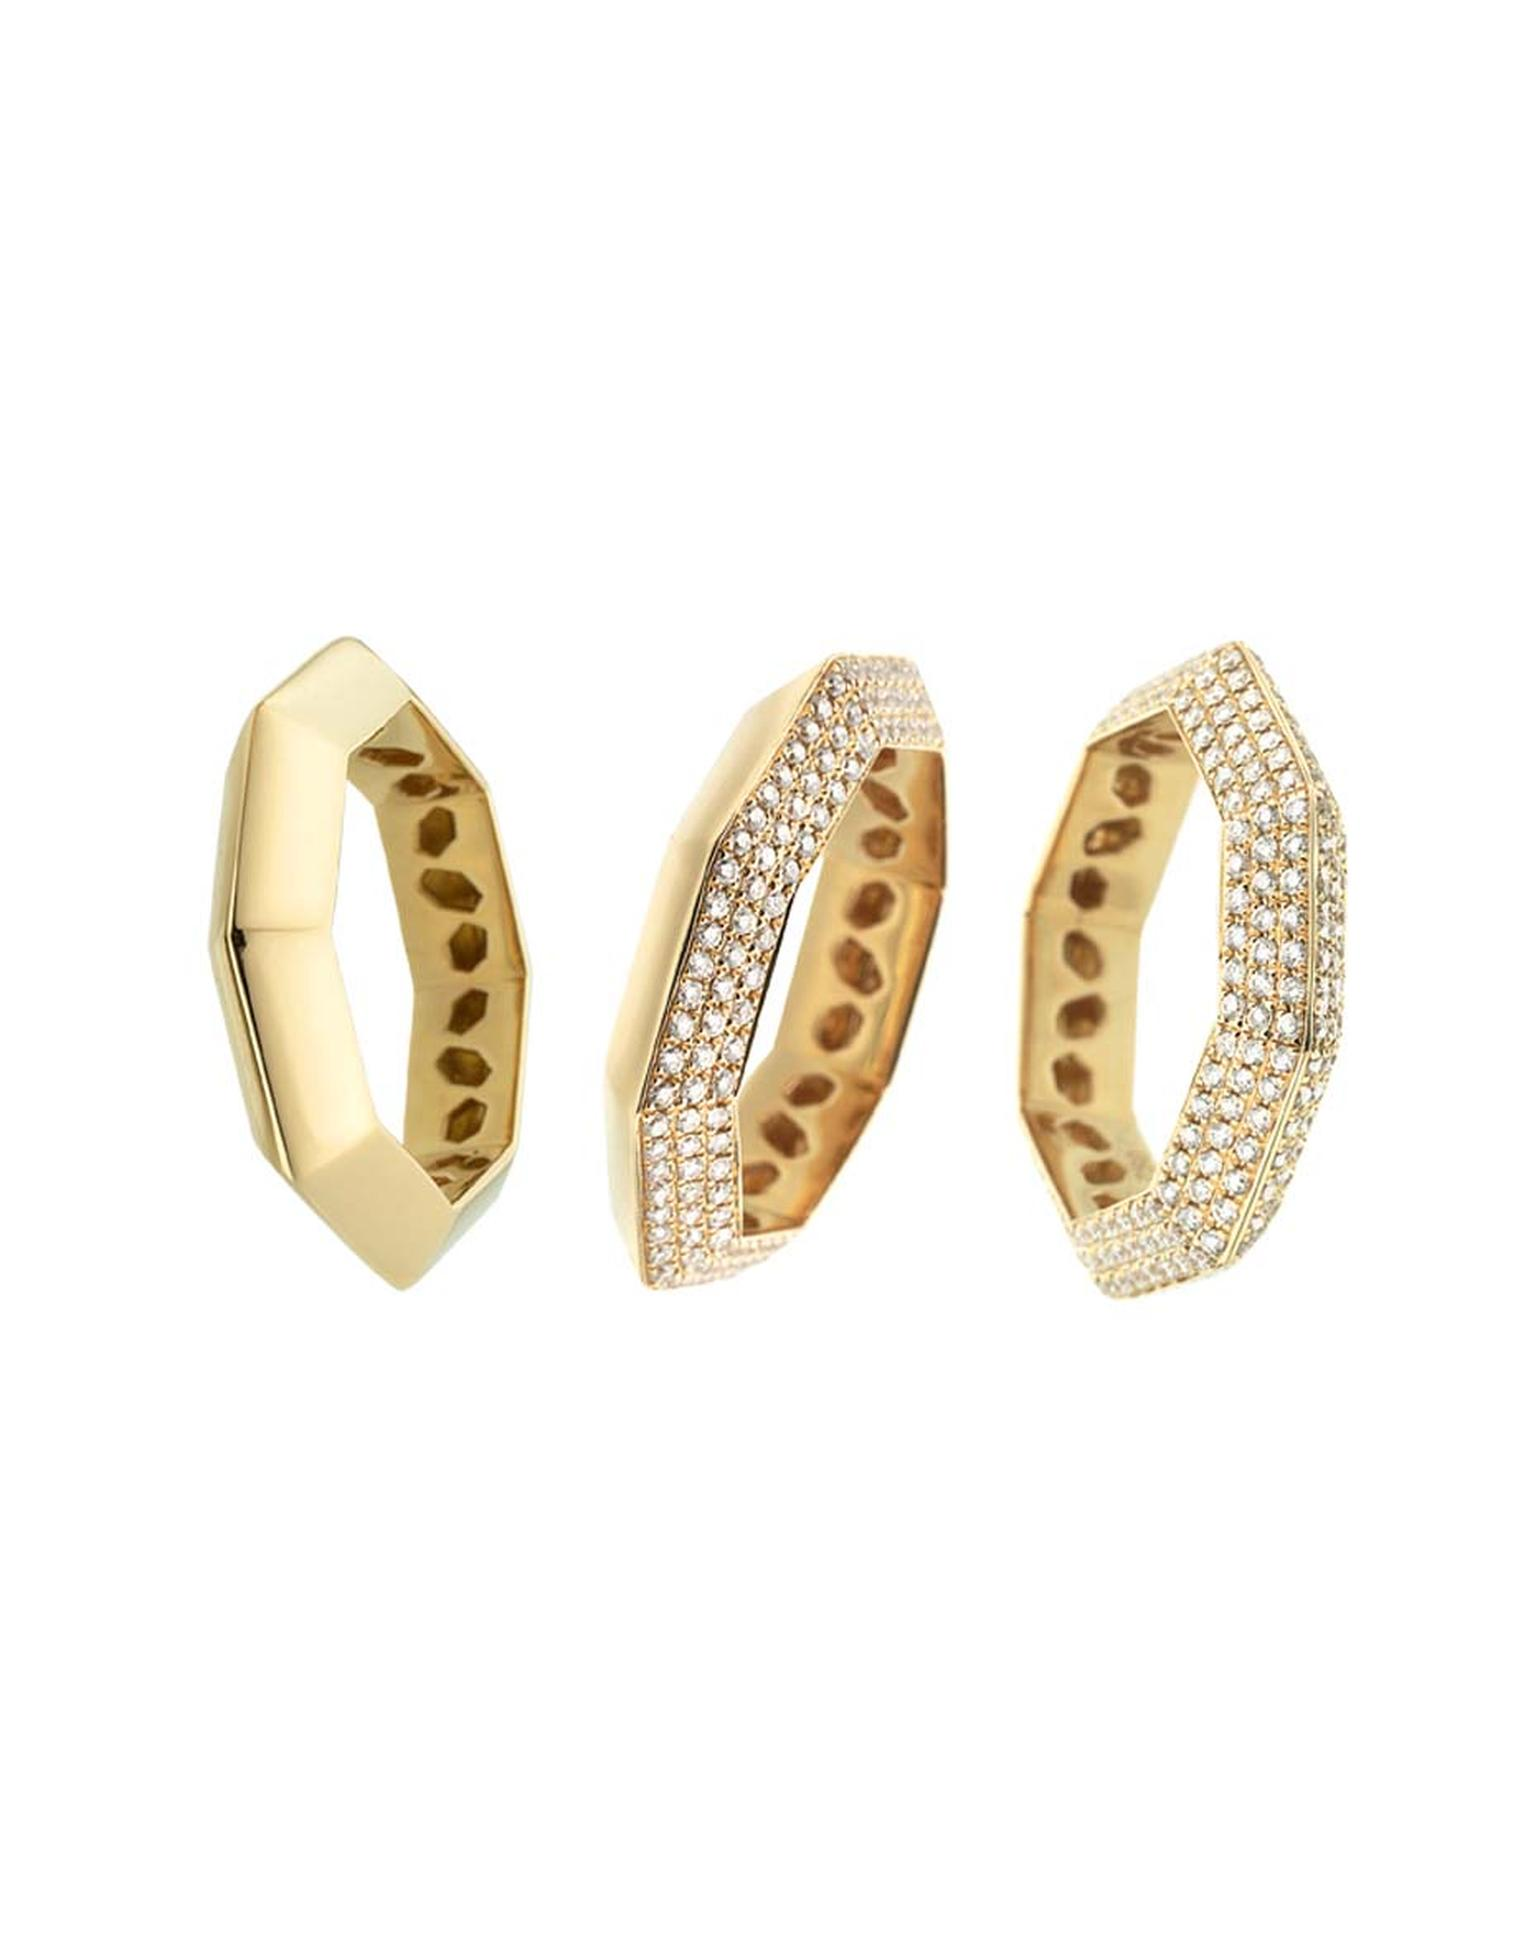 Octium Stacks and Facets yellow gold and diamond rings.